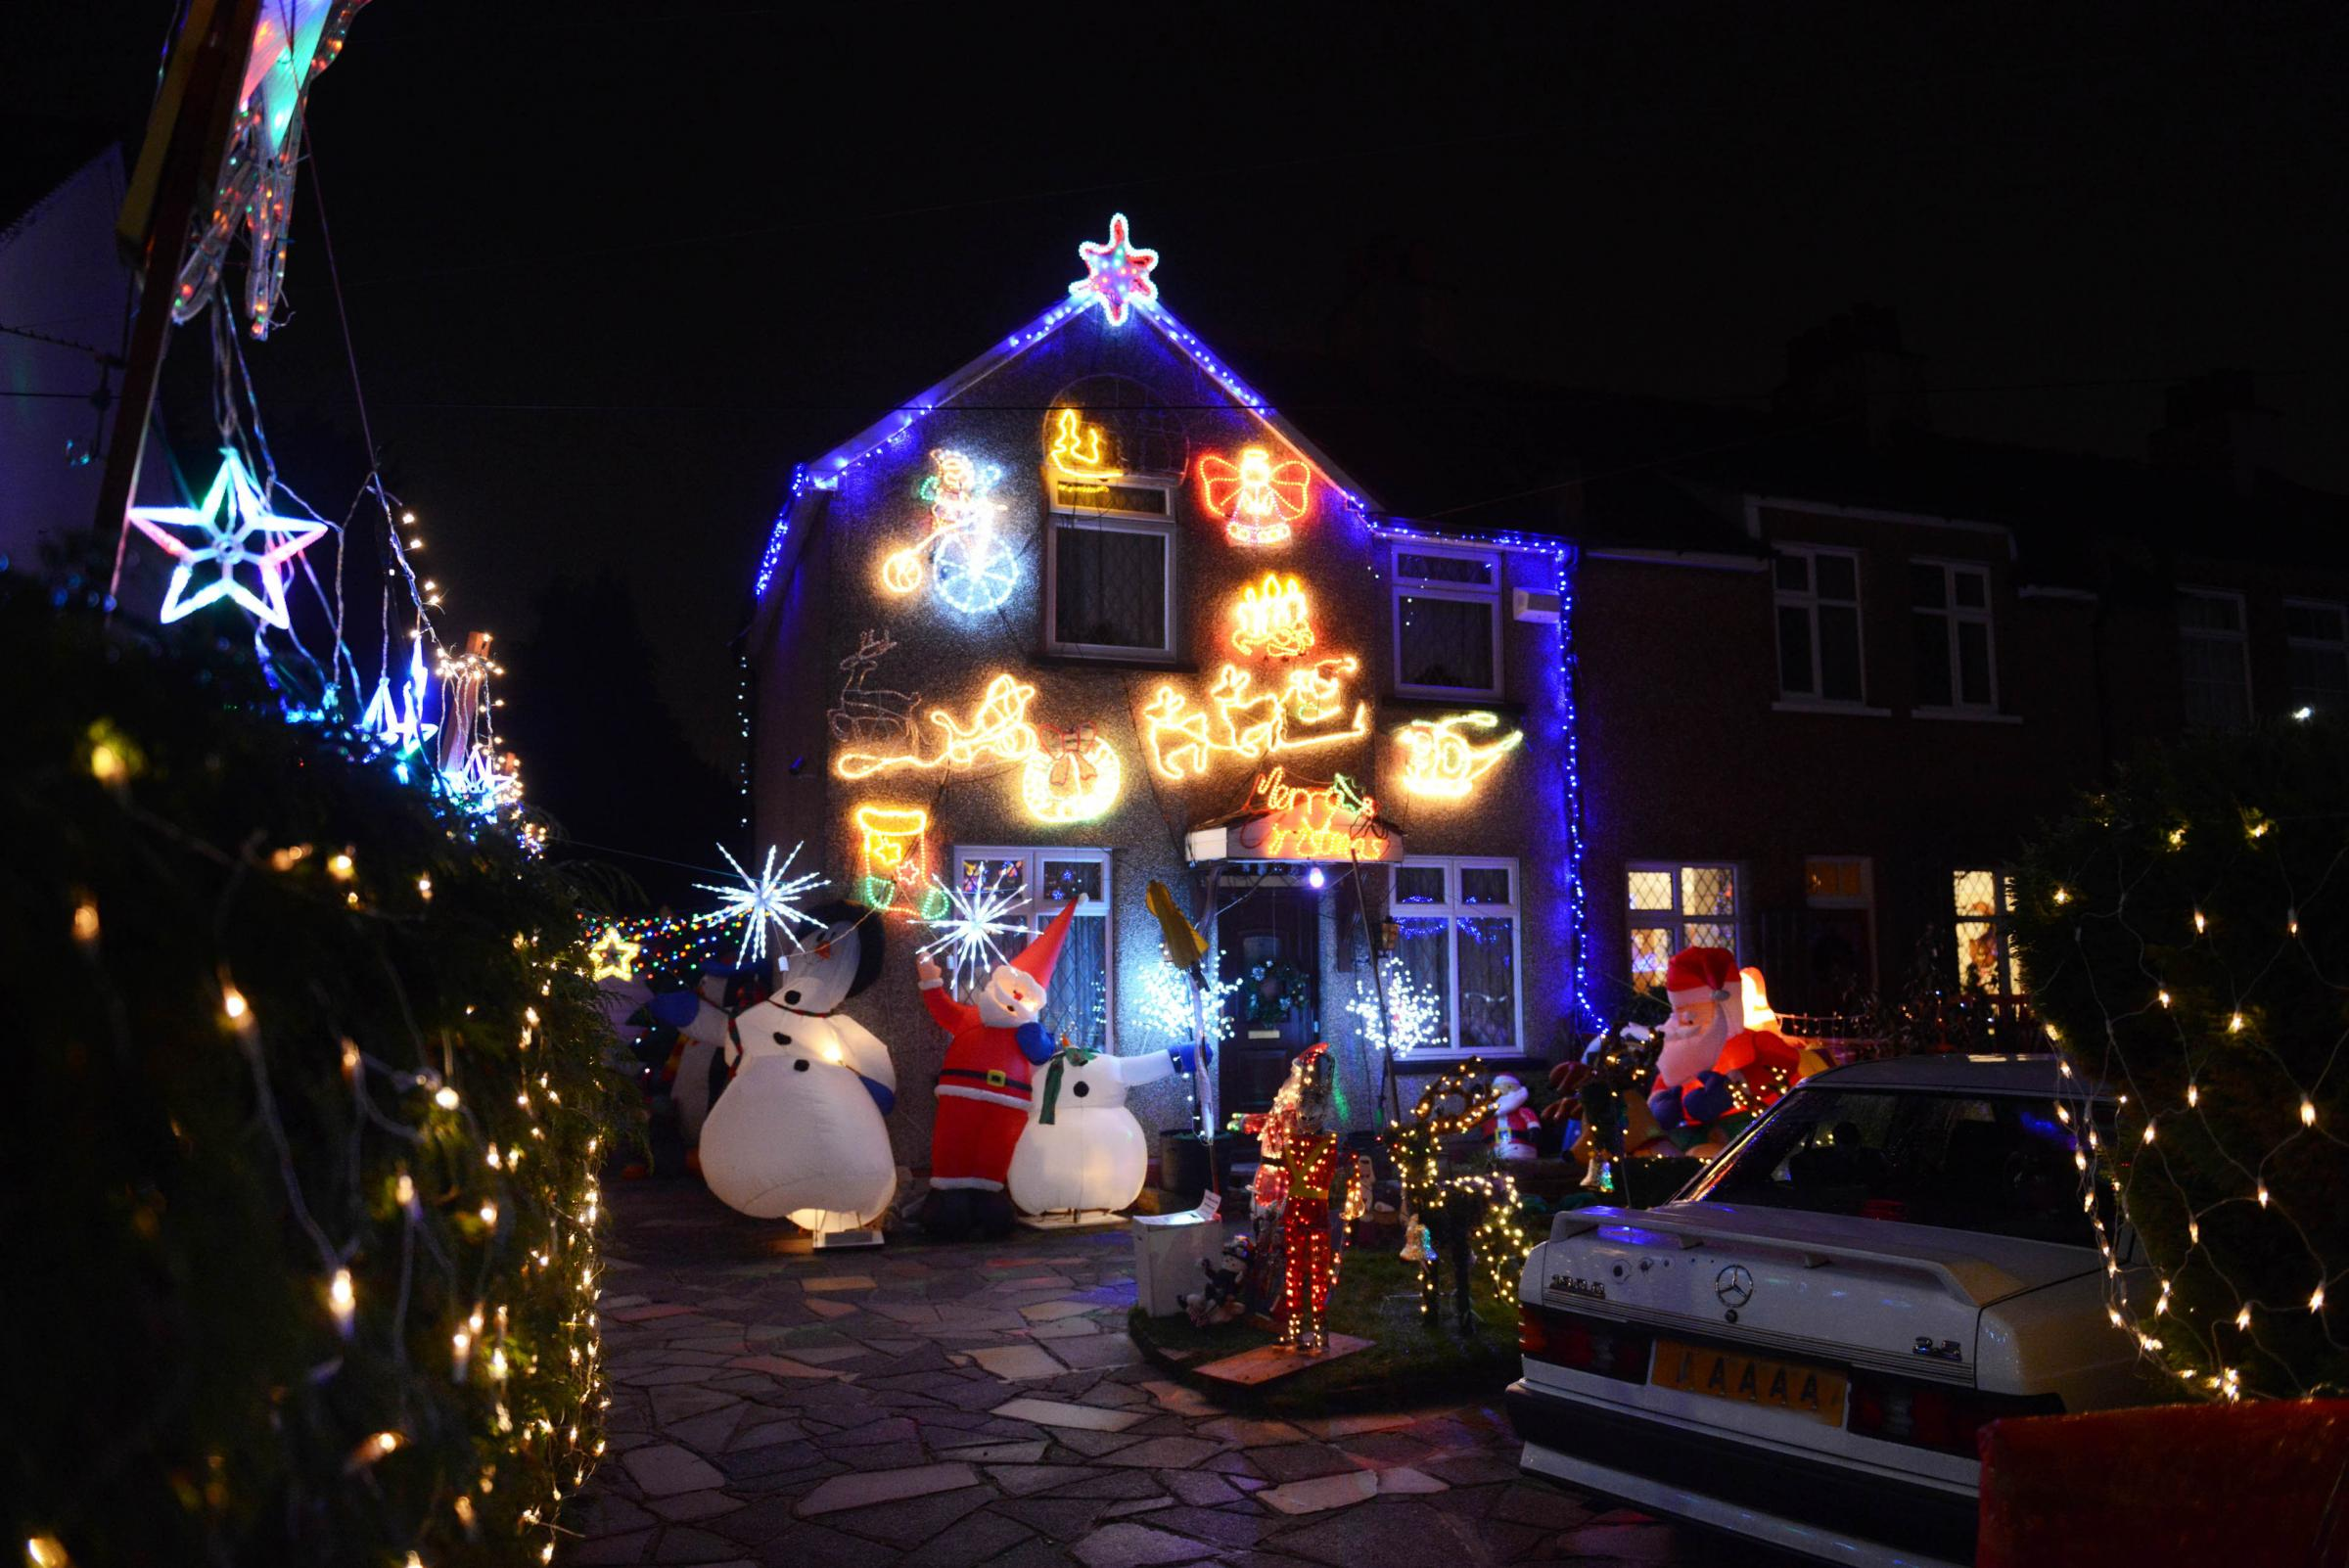 This Road In Morden Has Won Christmas With Its Amazing Lights And  Decorations